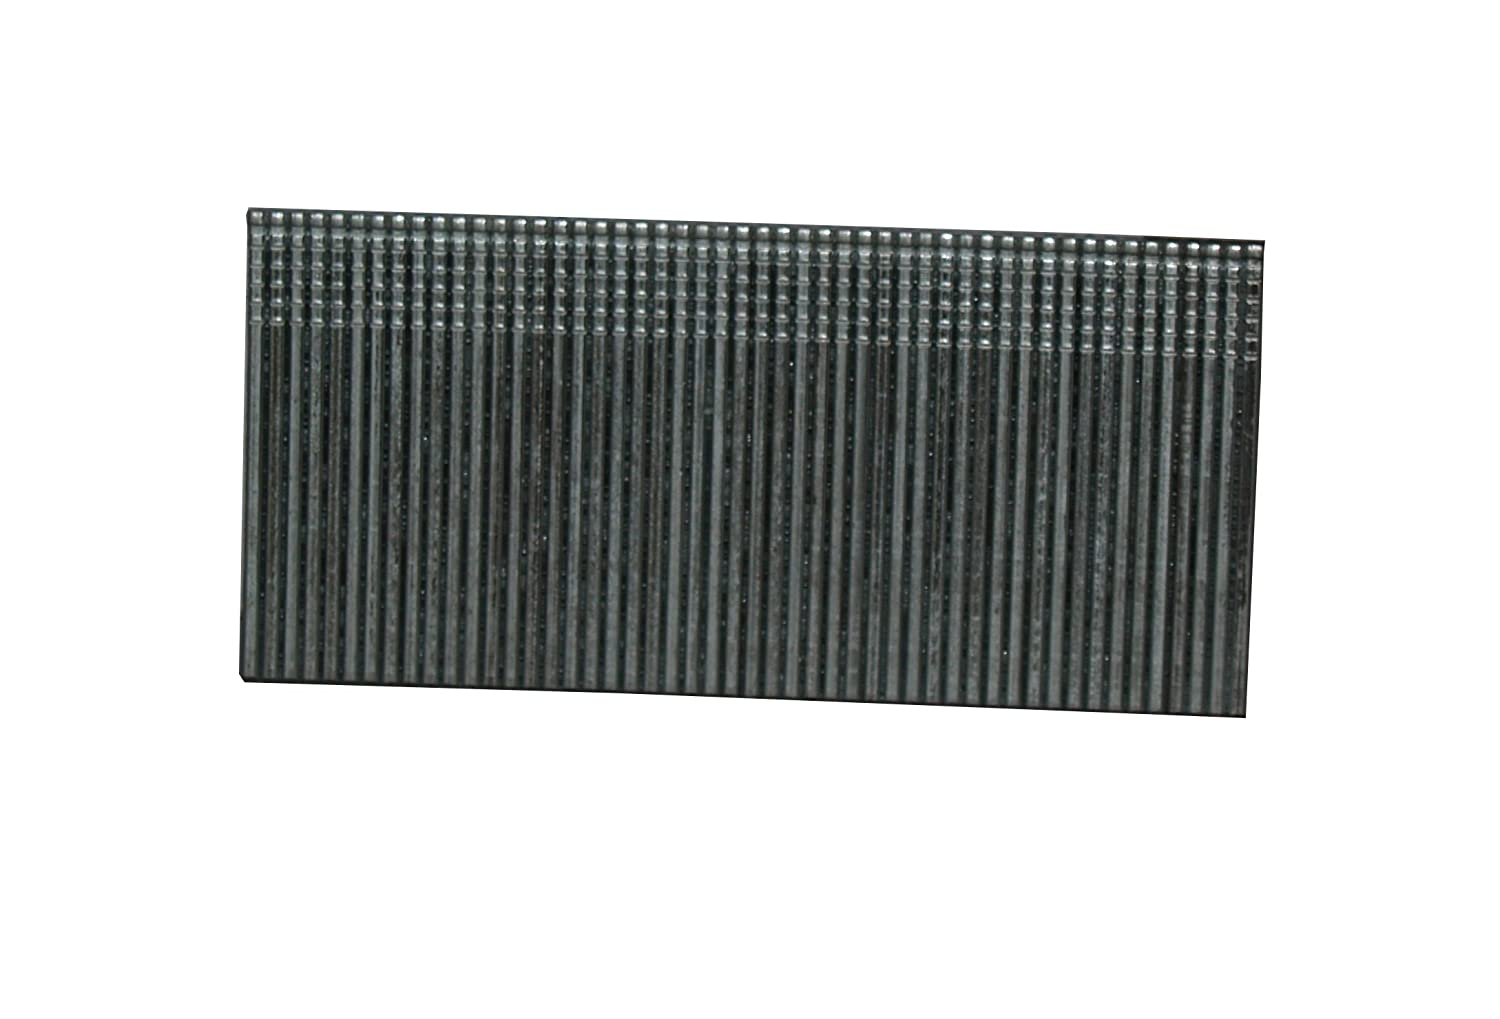 Grip Rite Prime Guard GRF1622M 16 Gauge Electrogalvanized Straight Collated Finish Nails, 2' 2